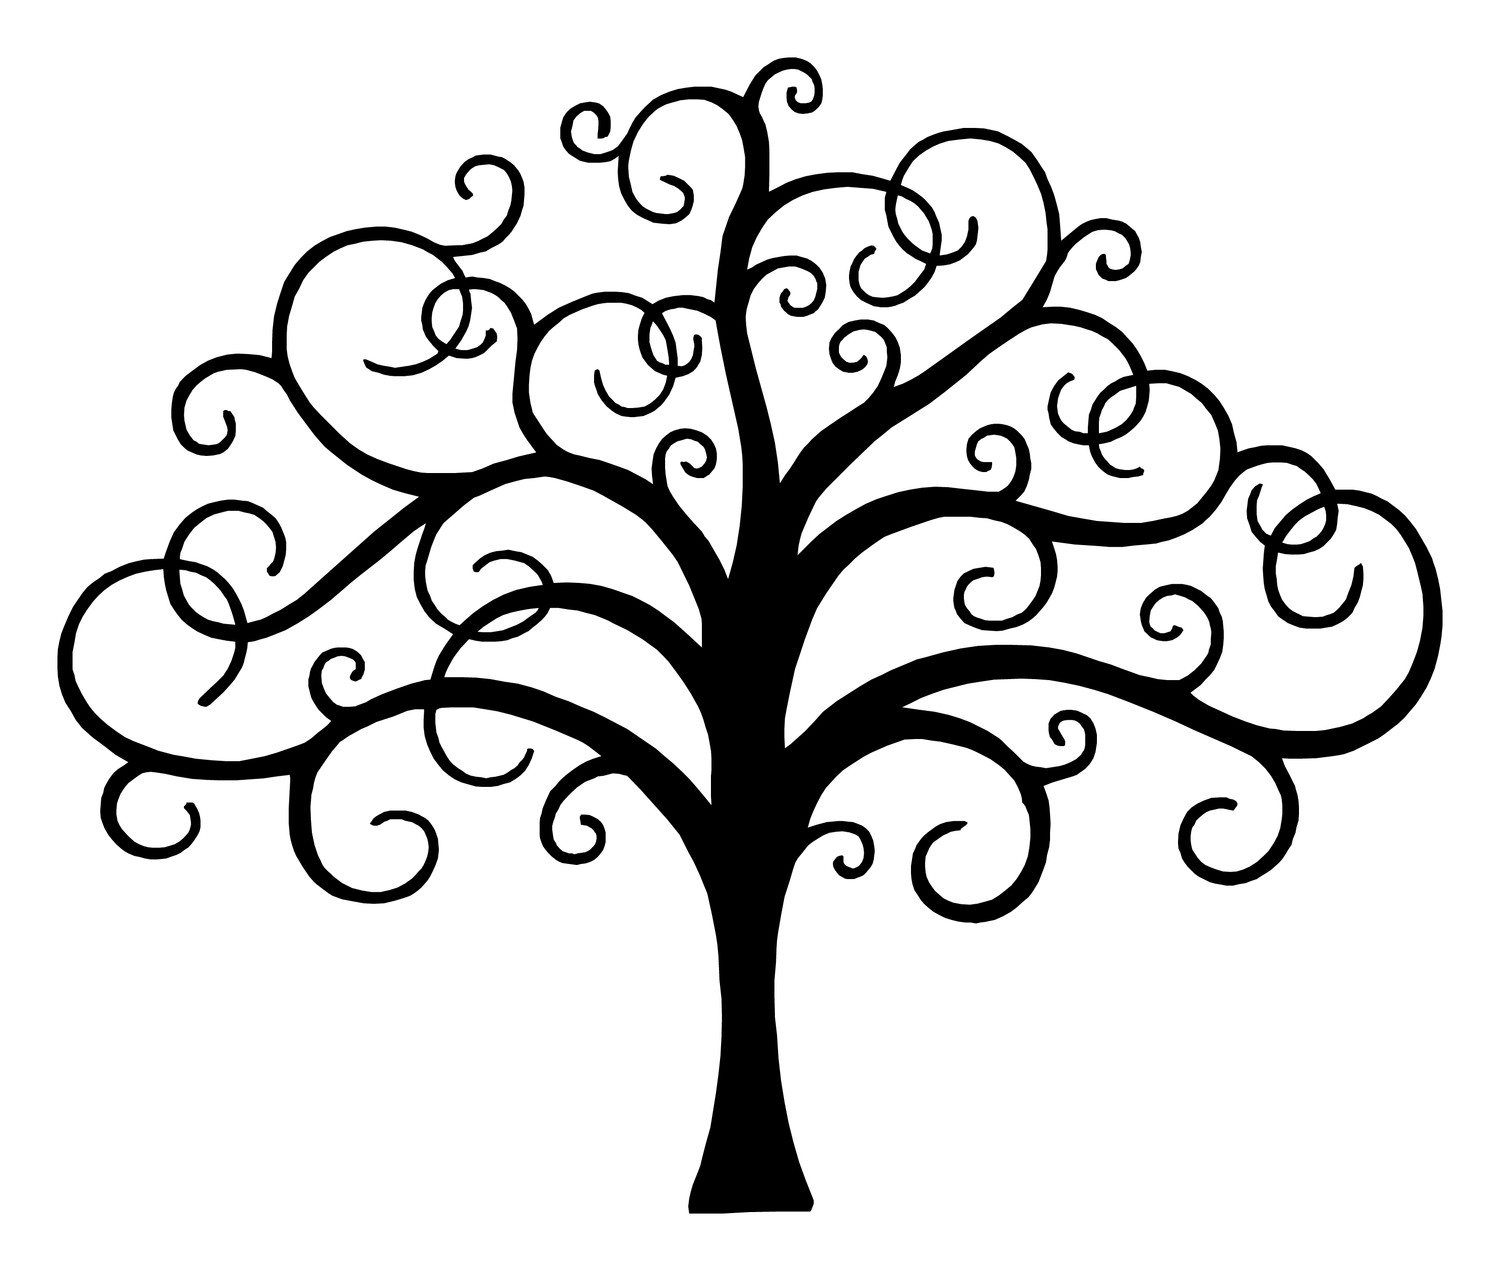 10 The Tree Of Life Drawing Free Clipart-10 The Tree Of Life Drawing Free Cliparts That You Can Download To You-0